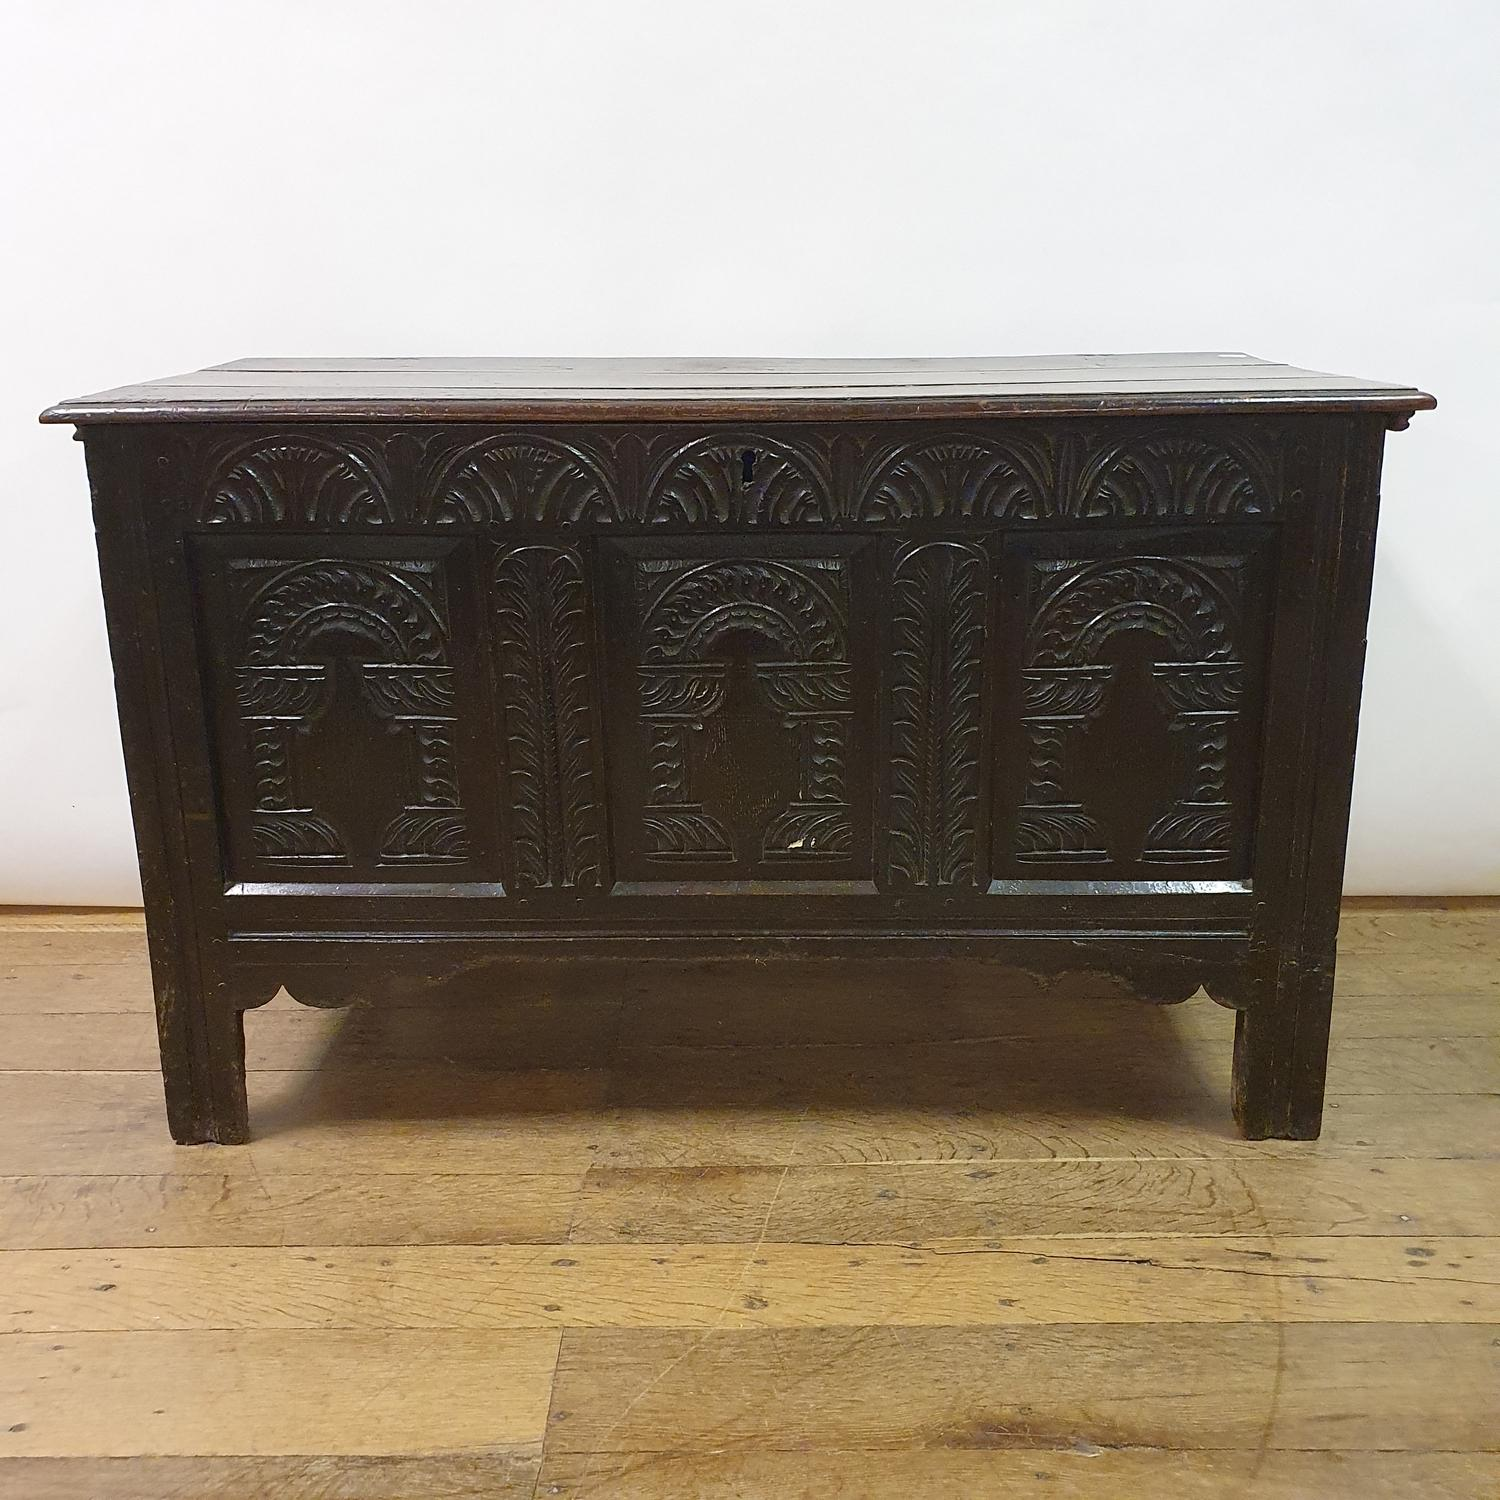 An 18th century oak coffer, with later carved decoration, 123 cm wide